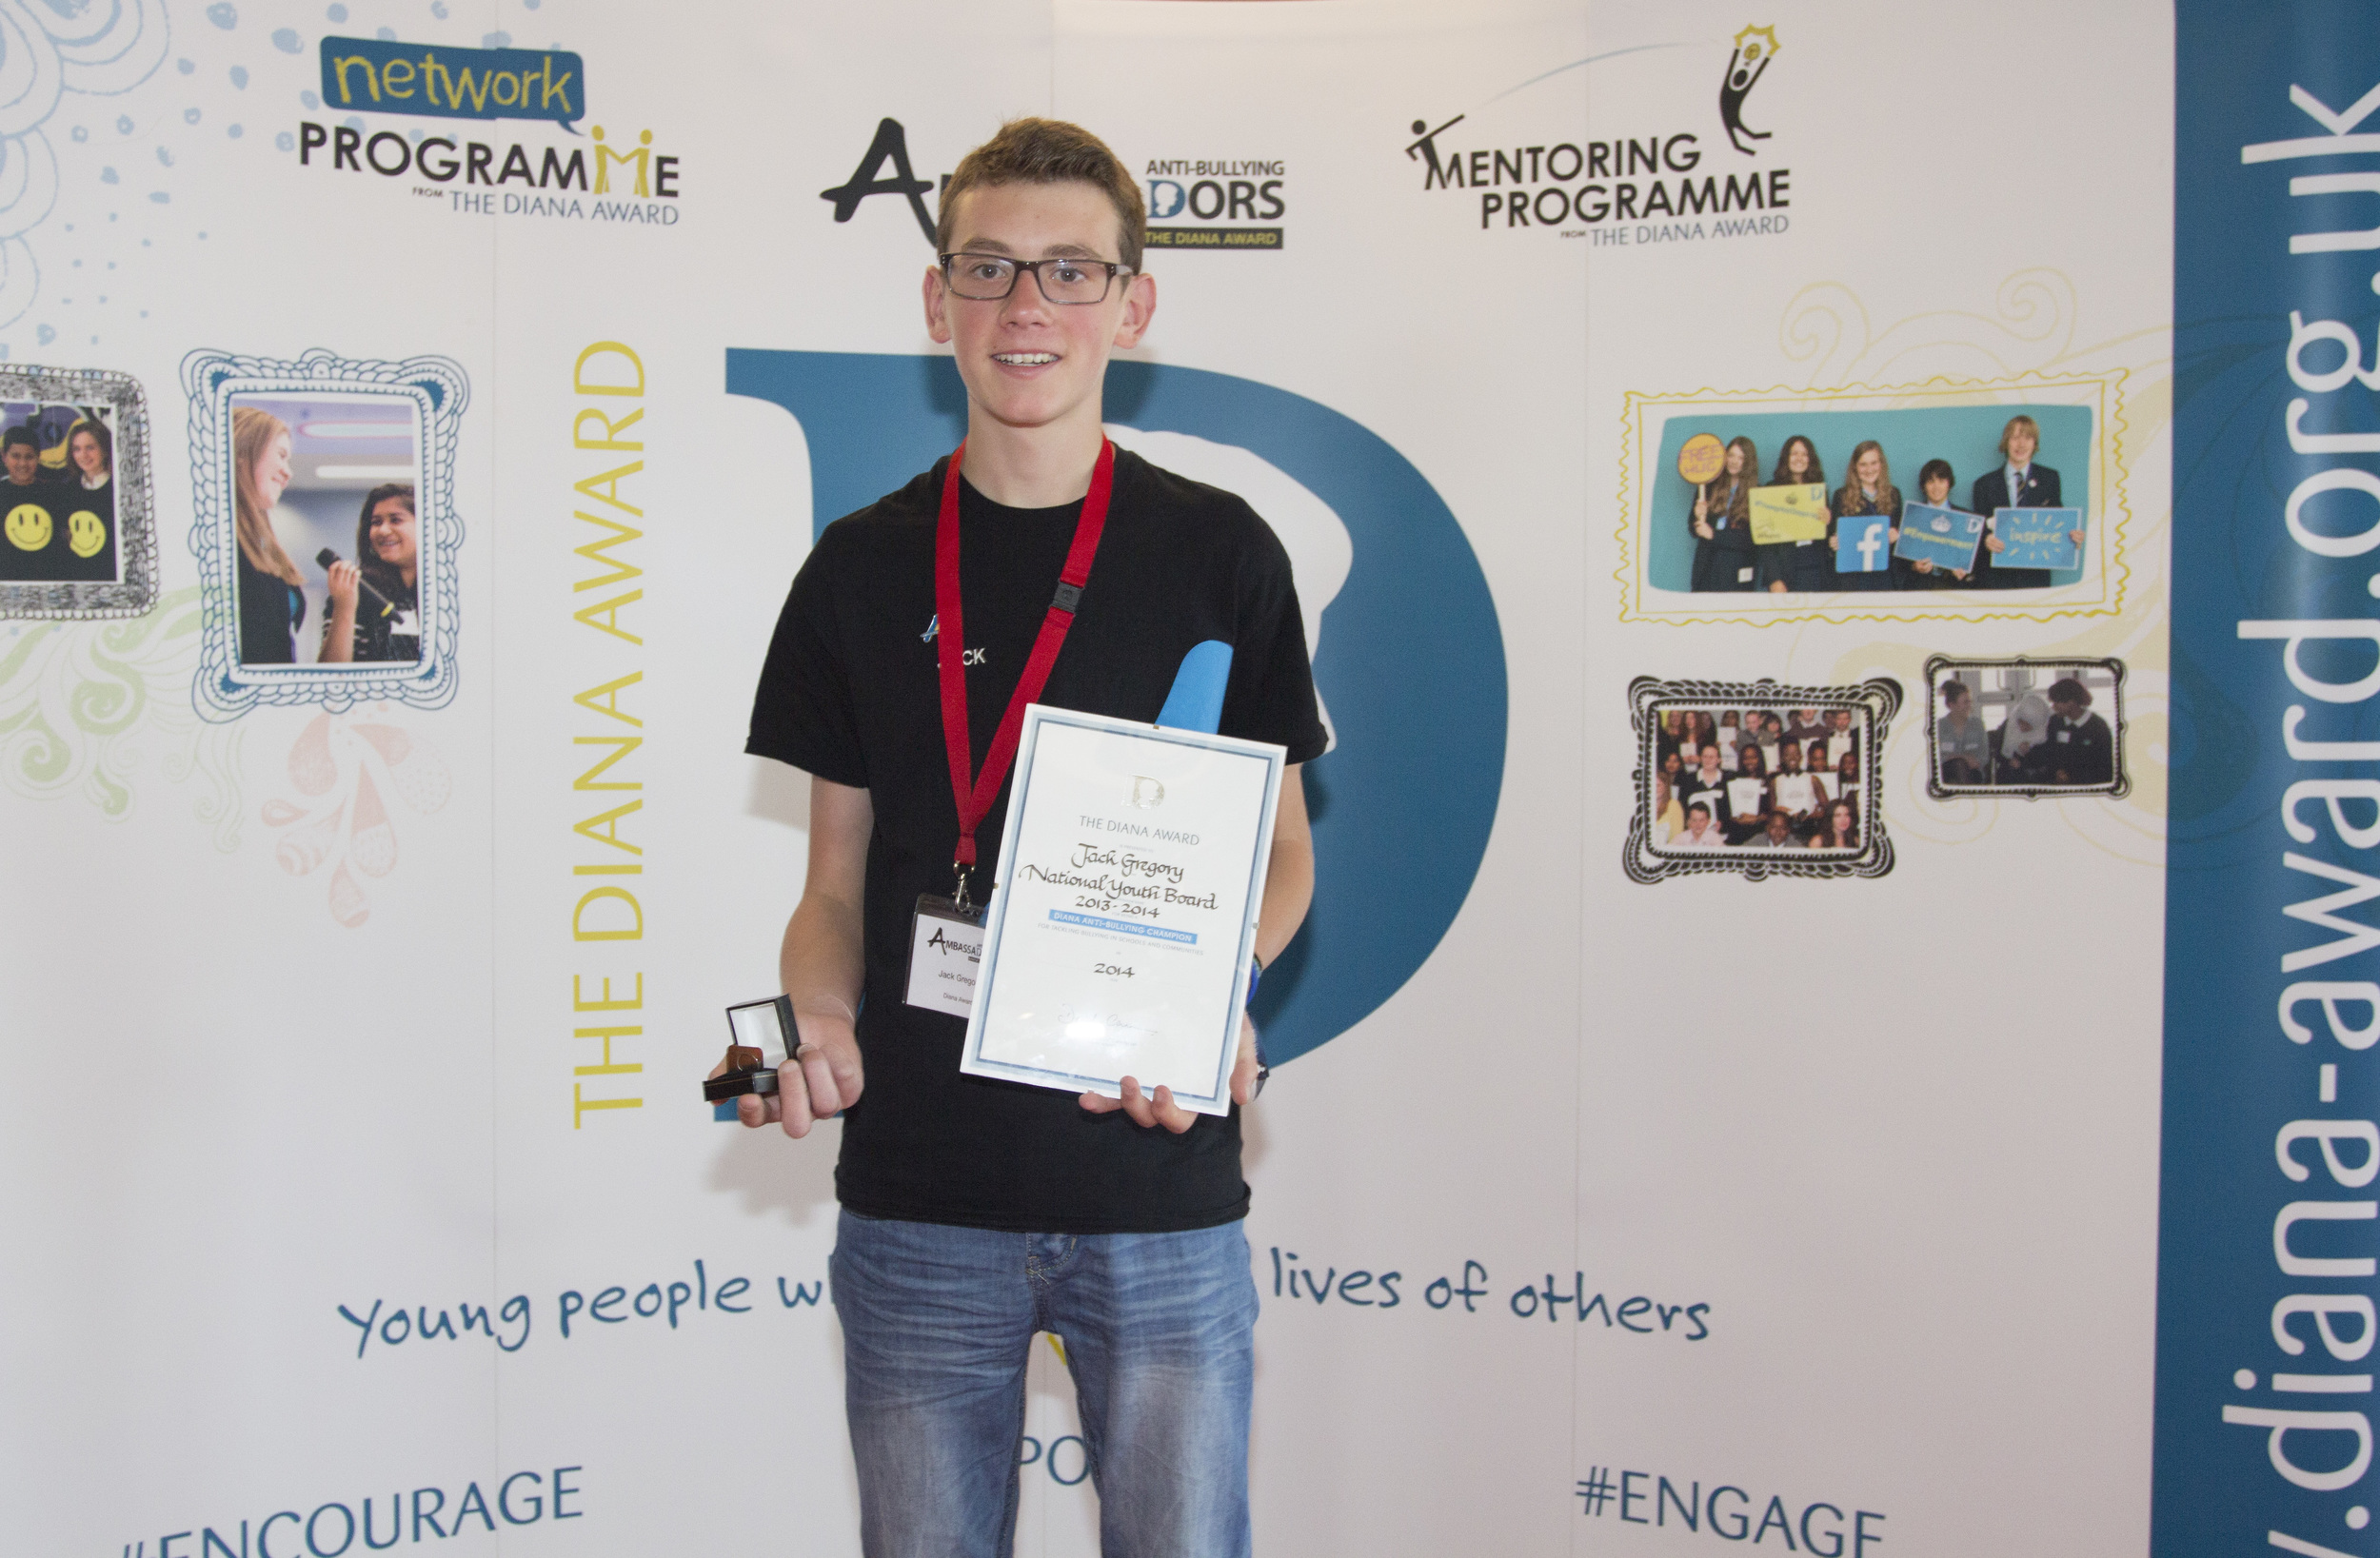 Jack receives a Diana Award to recognise his efforts